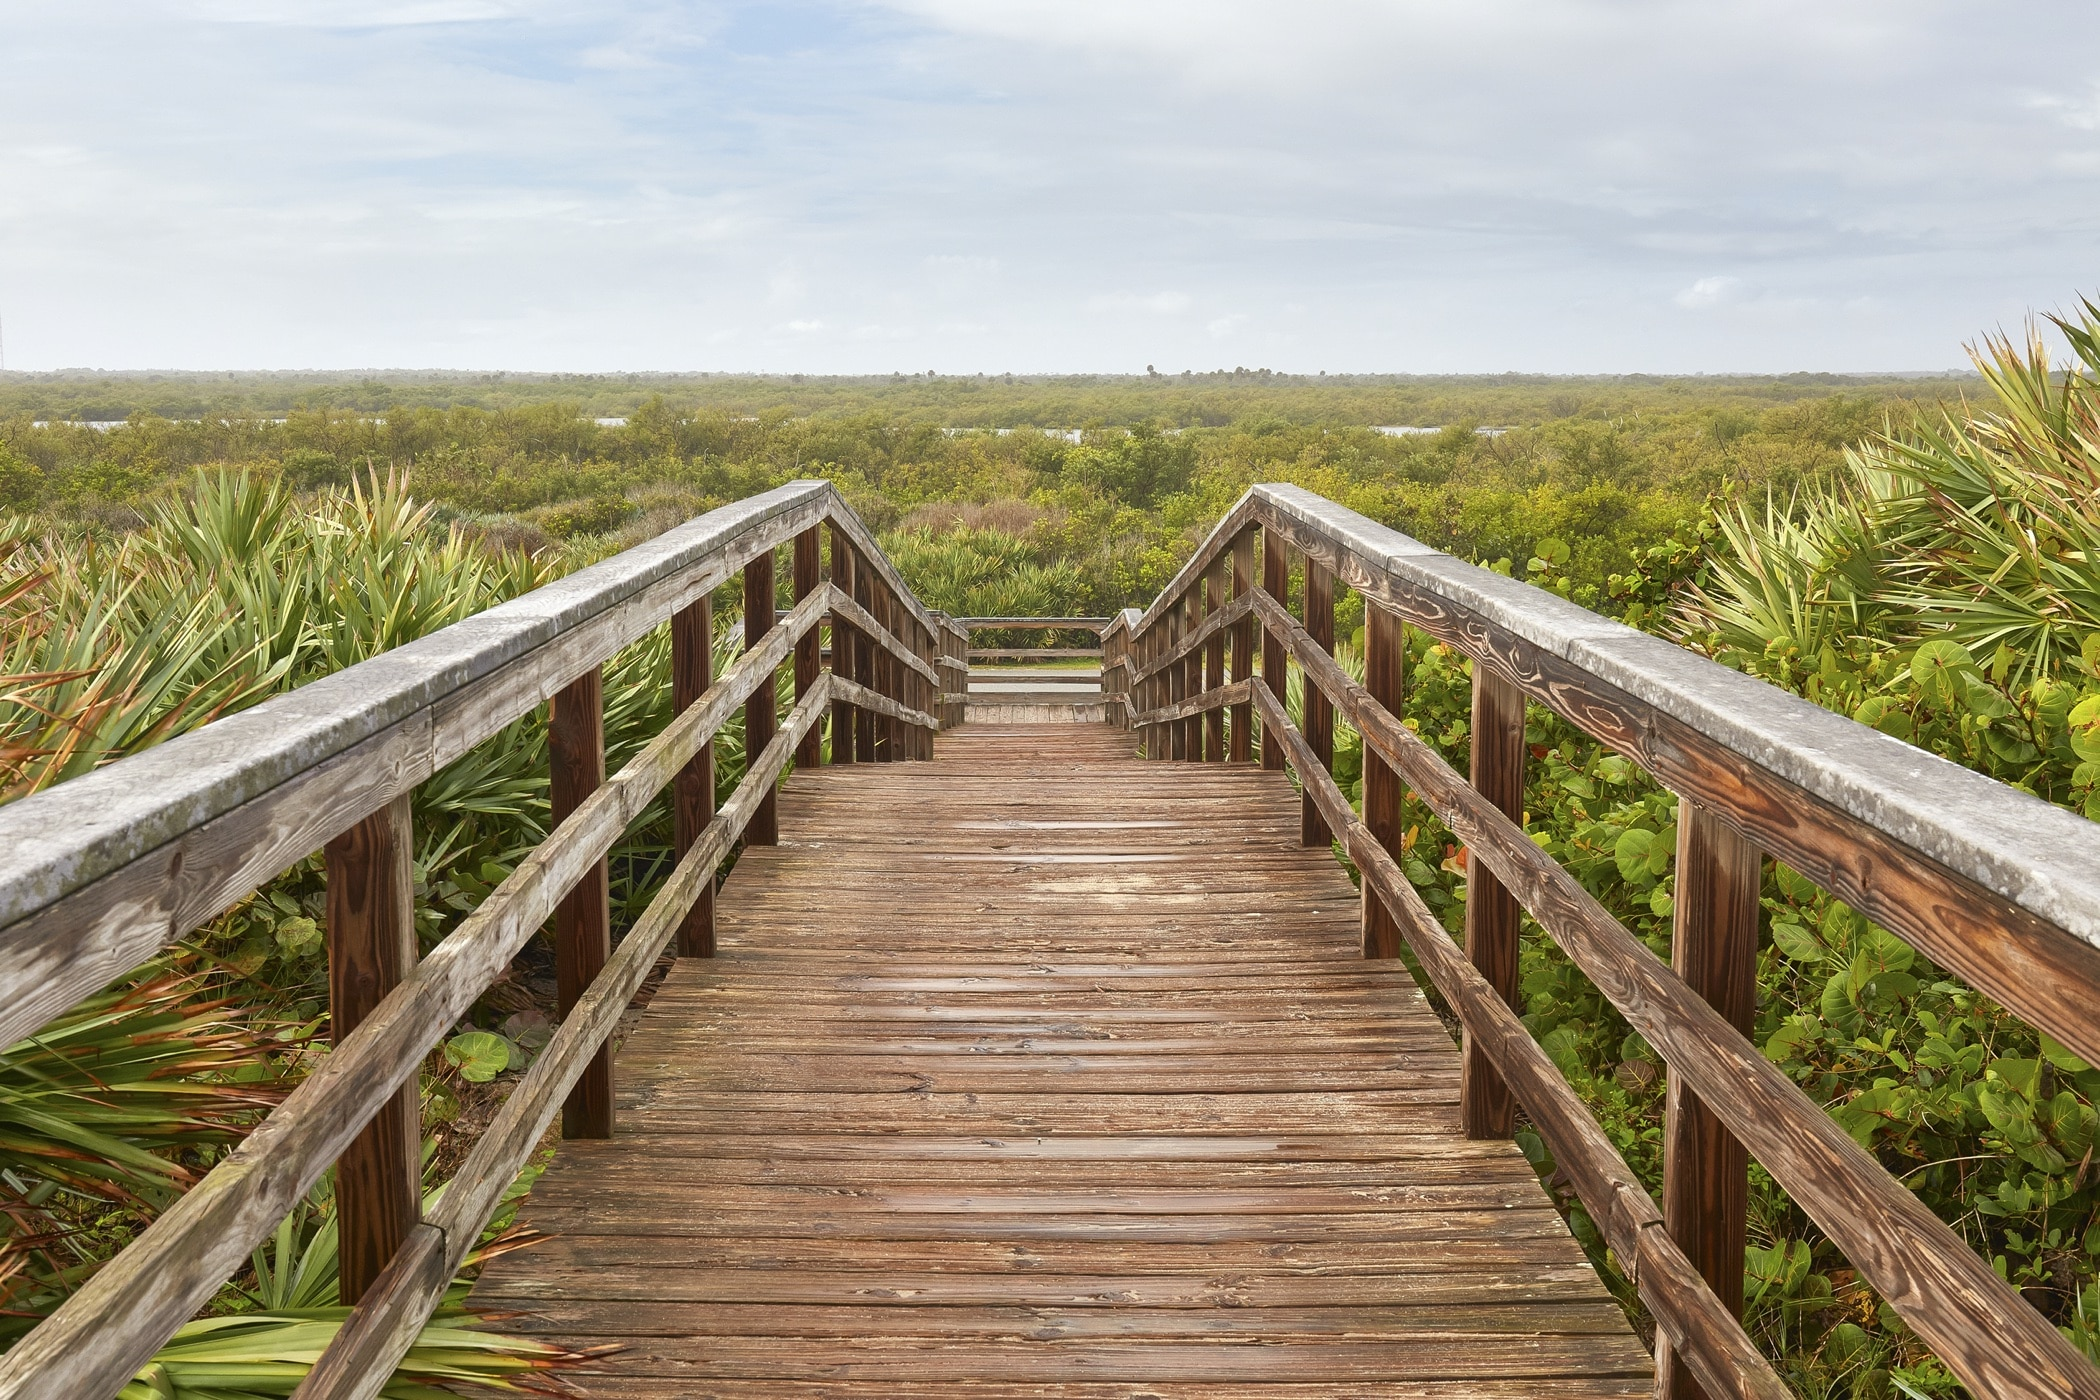 Boardwalk to/from the beach at Cape Canaveral National Seashore, Florida